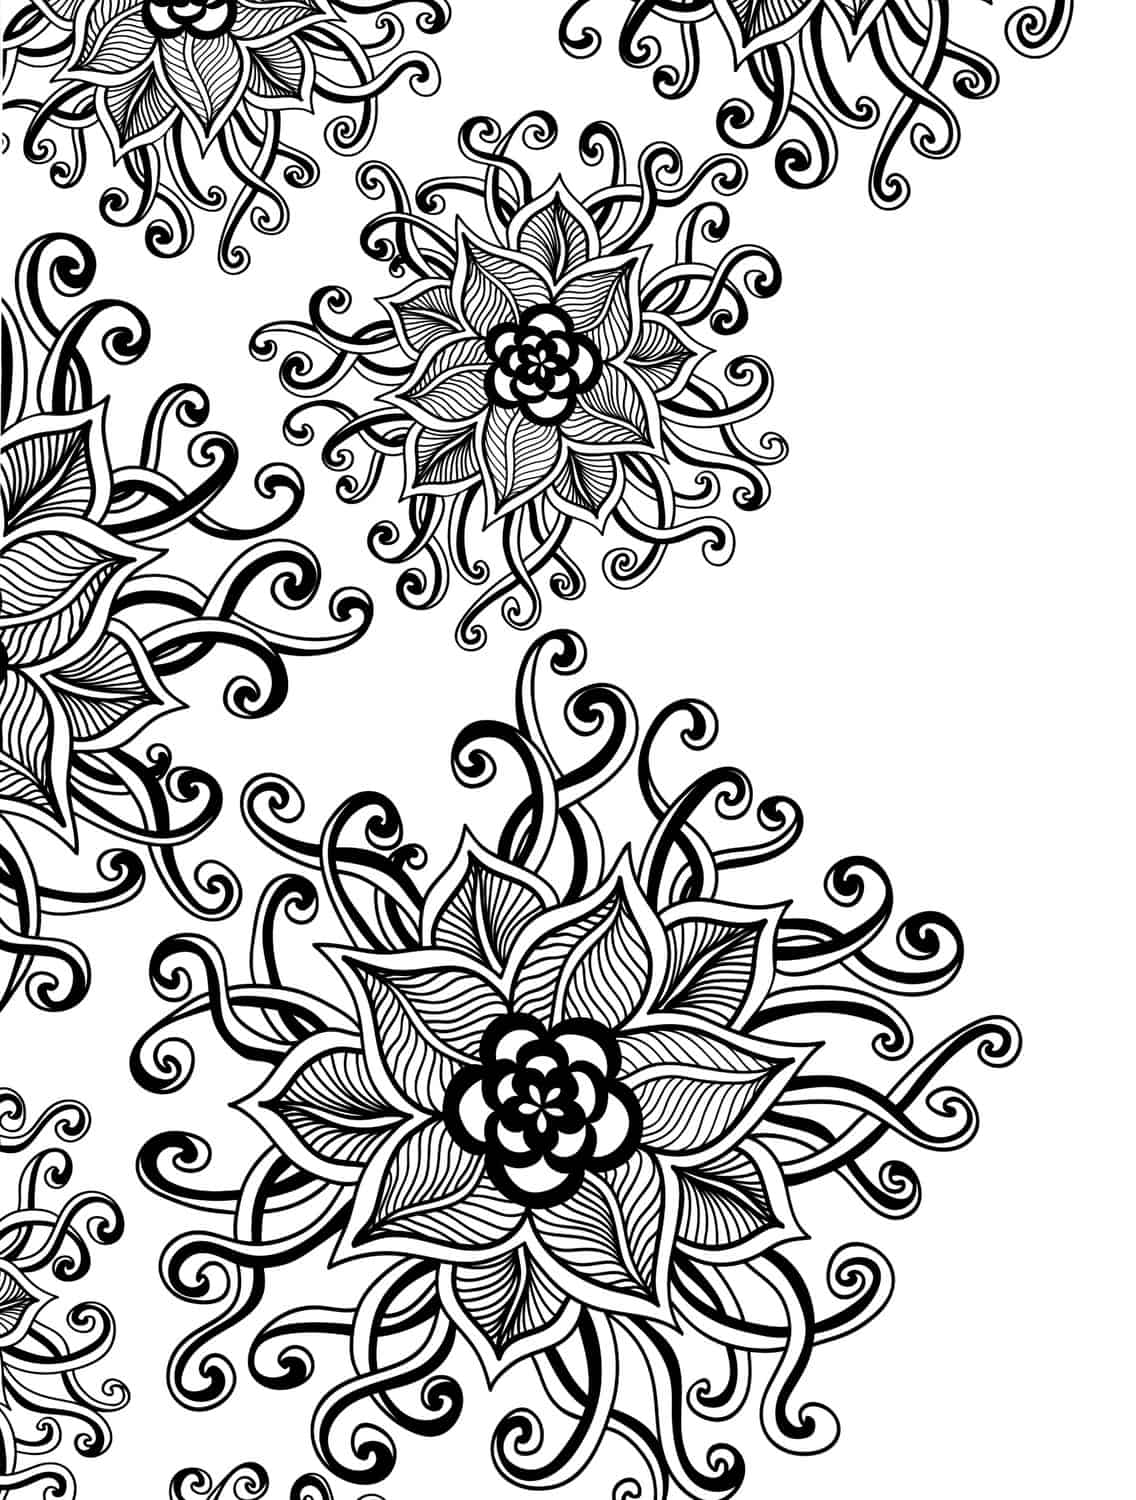 Free Coloring Pages Pictures You Can Print